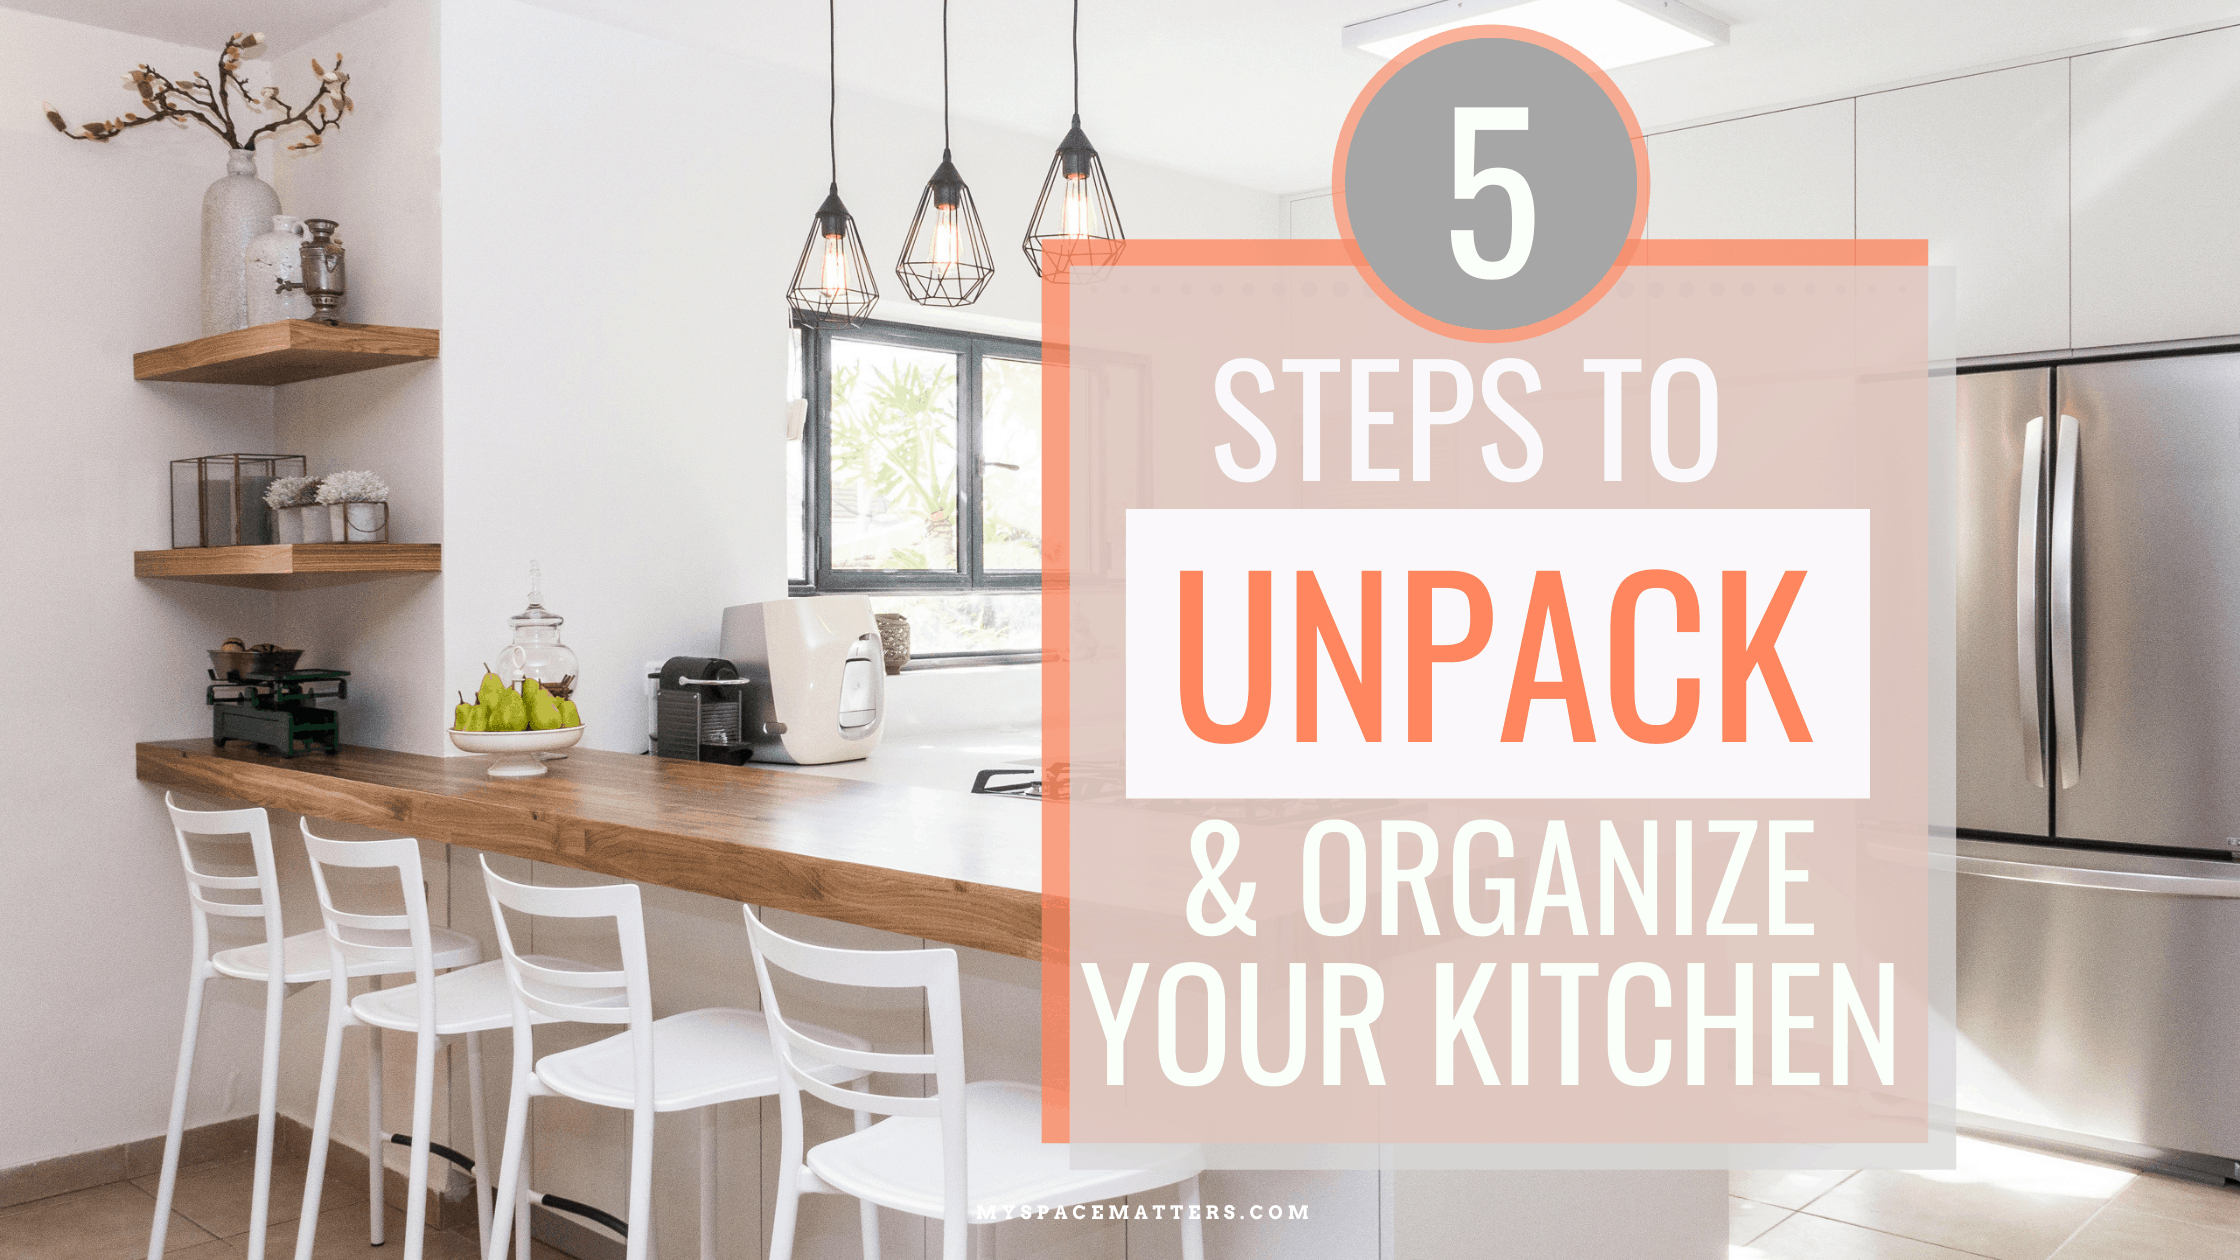 5 Steps to Unpacking a Kitchen Like a Professional